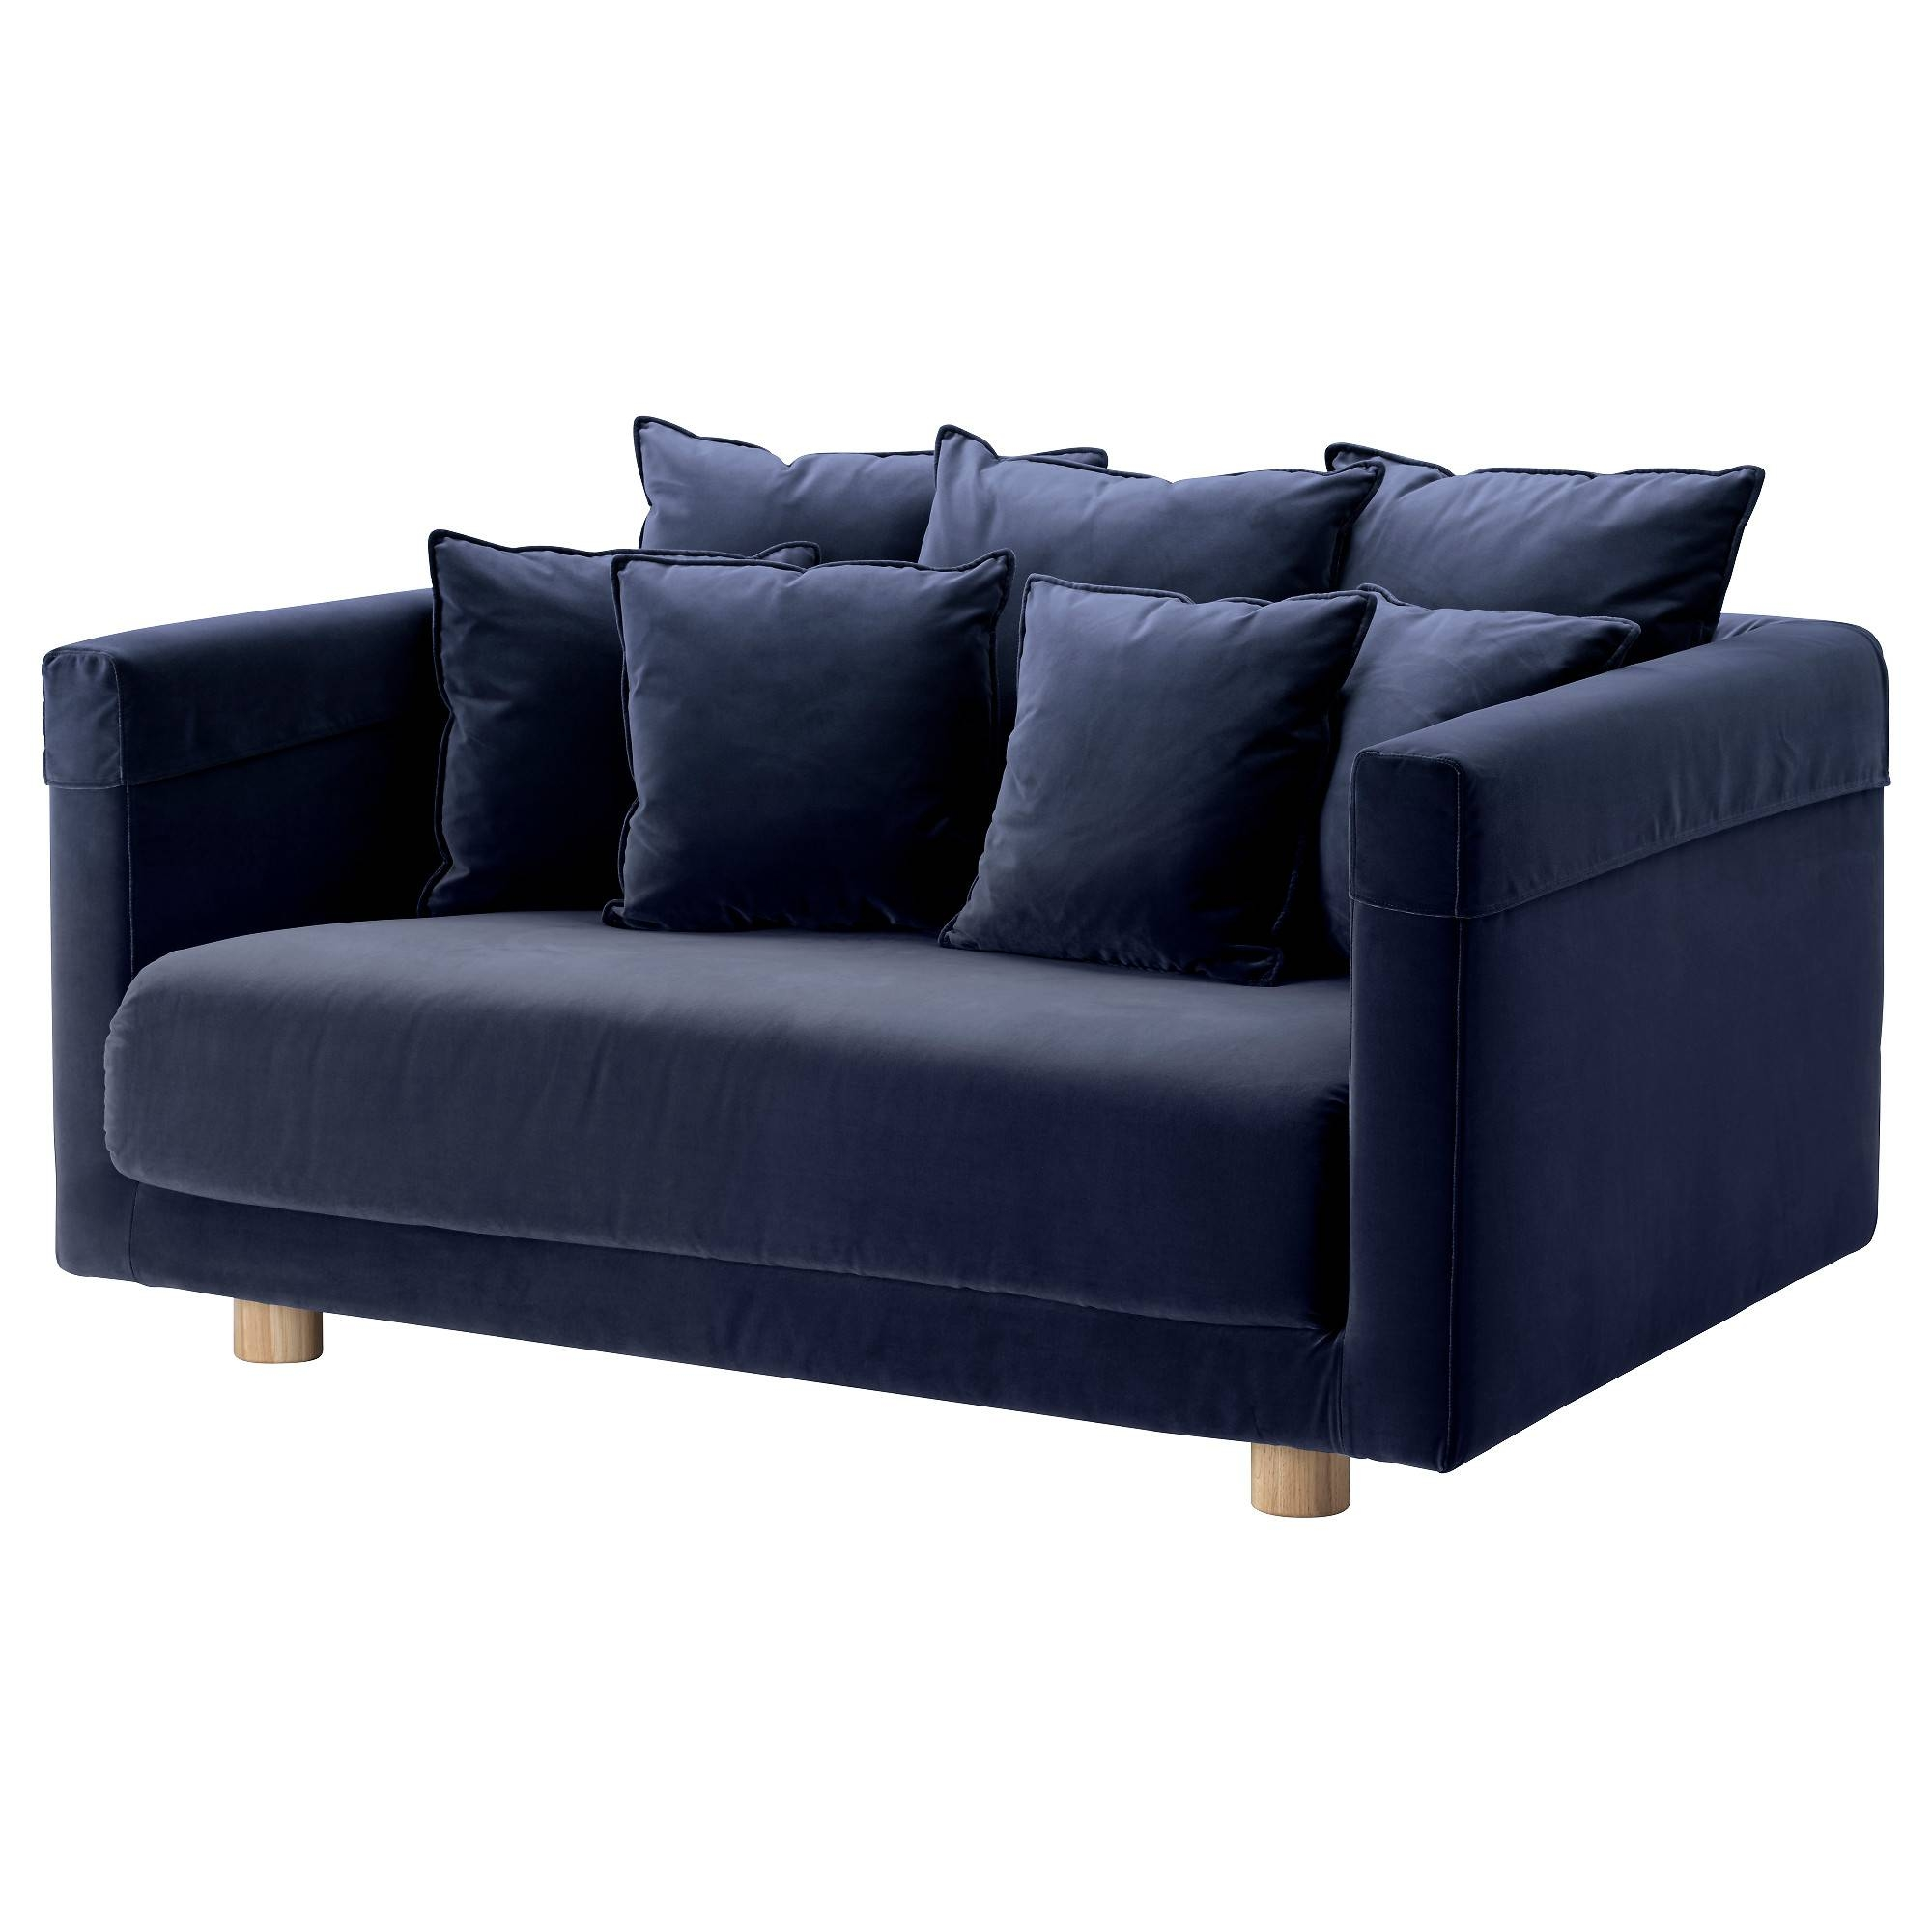 30 Collection of Fabric Sofas